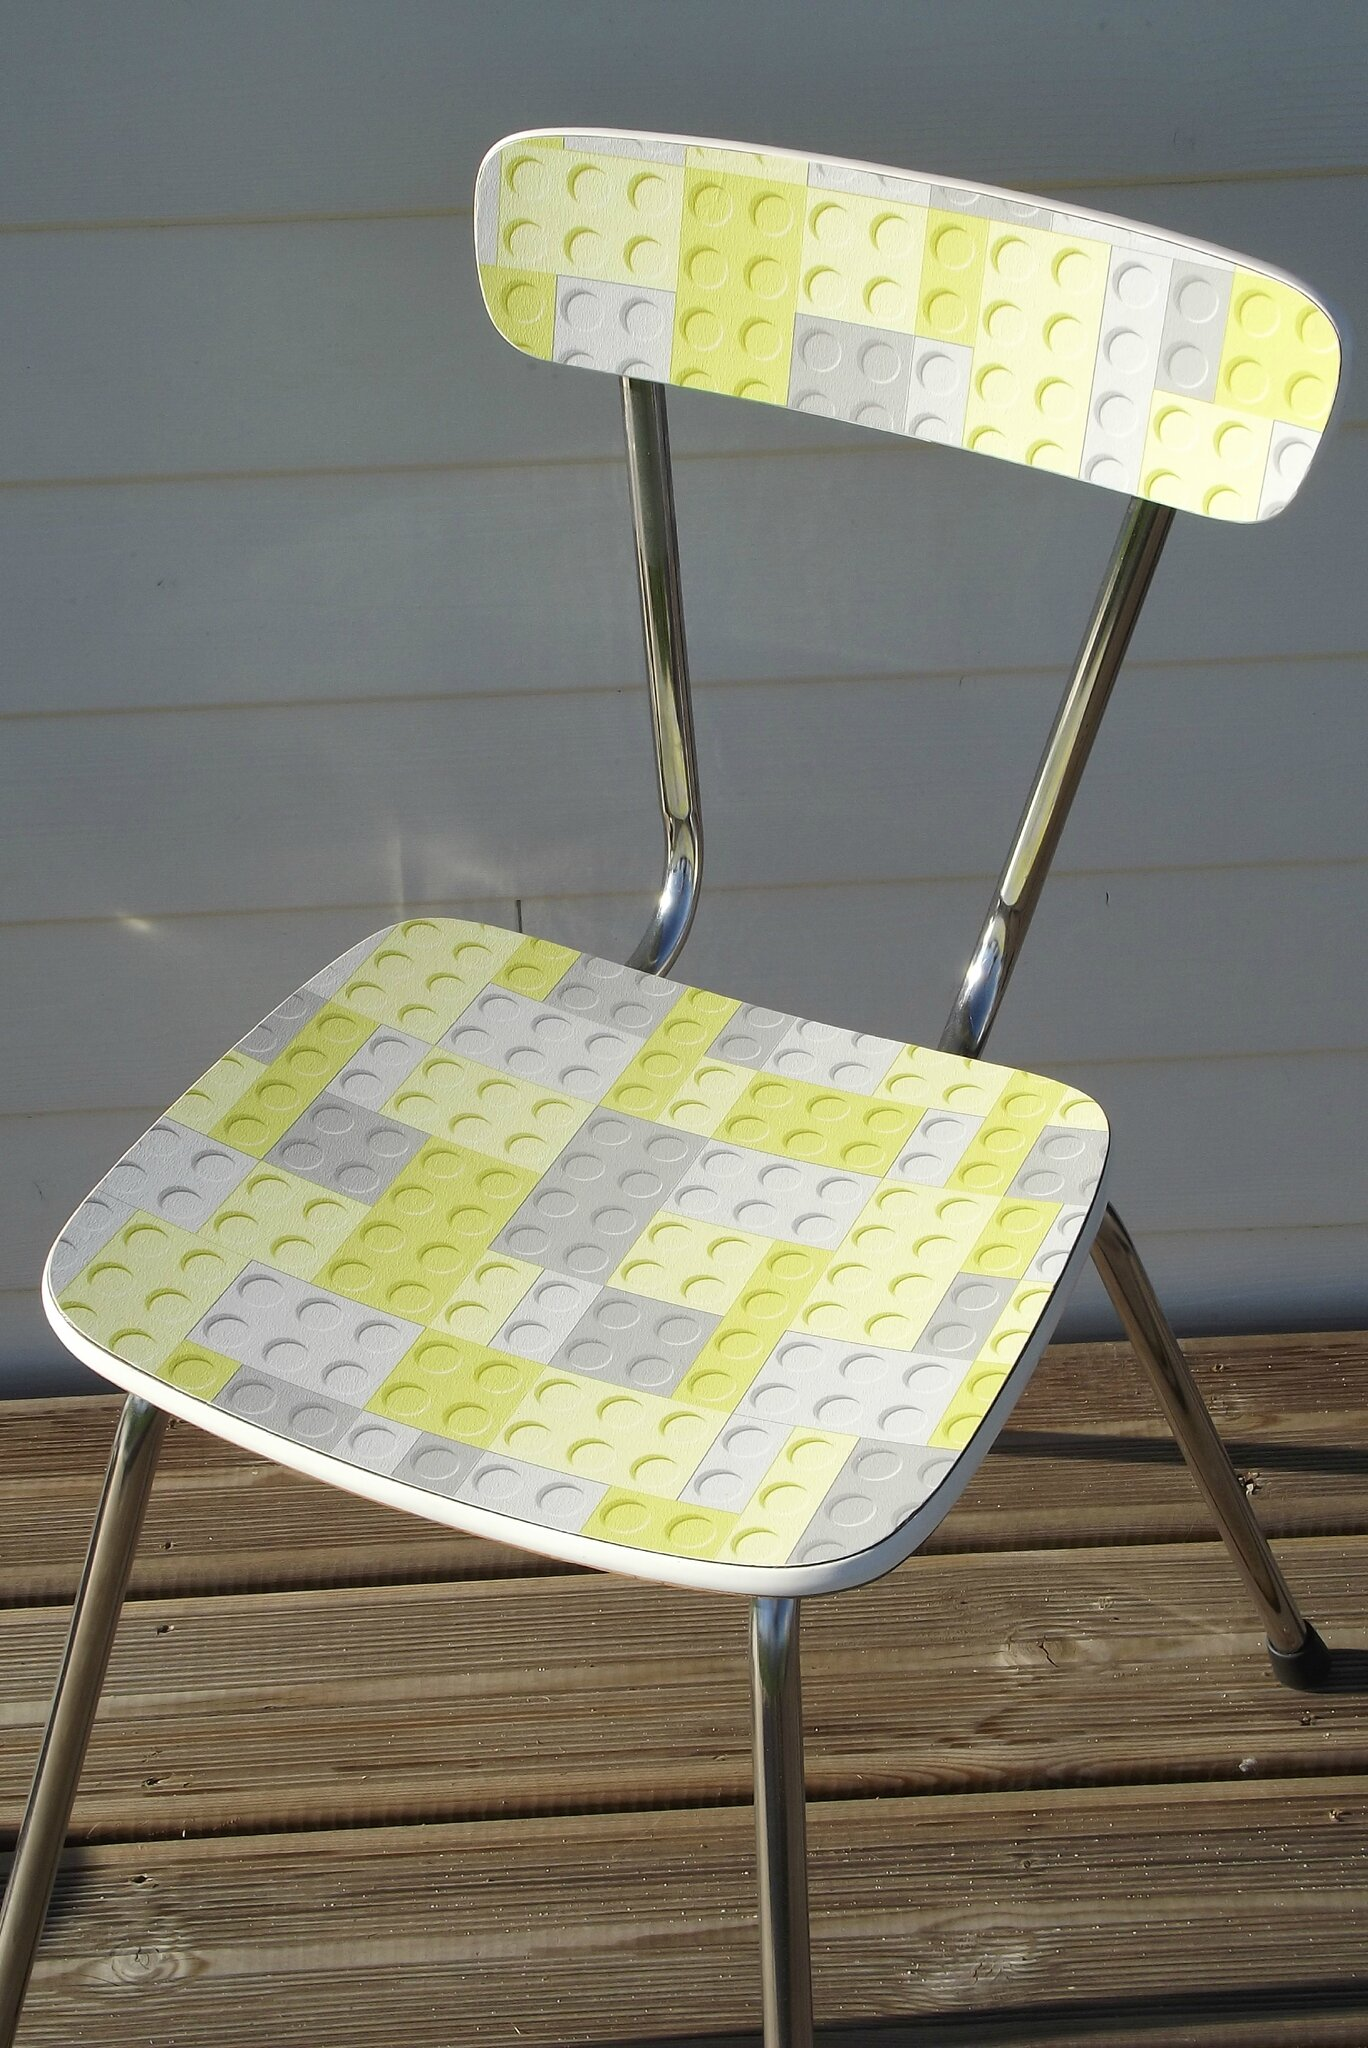 Chaise formica relook e l go l 39 atelier d 39 opaline - Relooker chaise formica ...